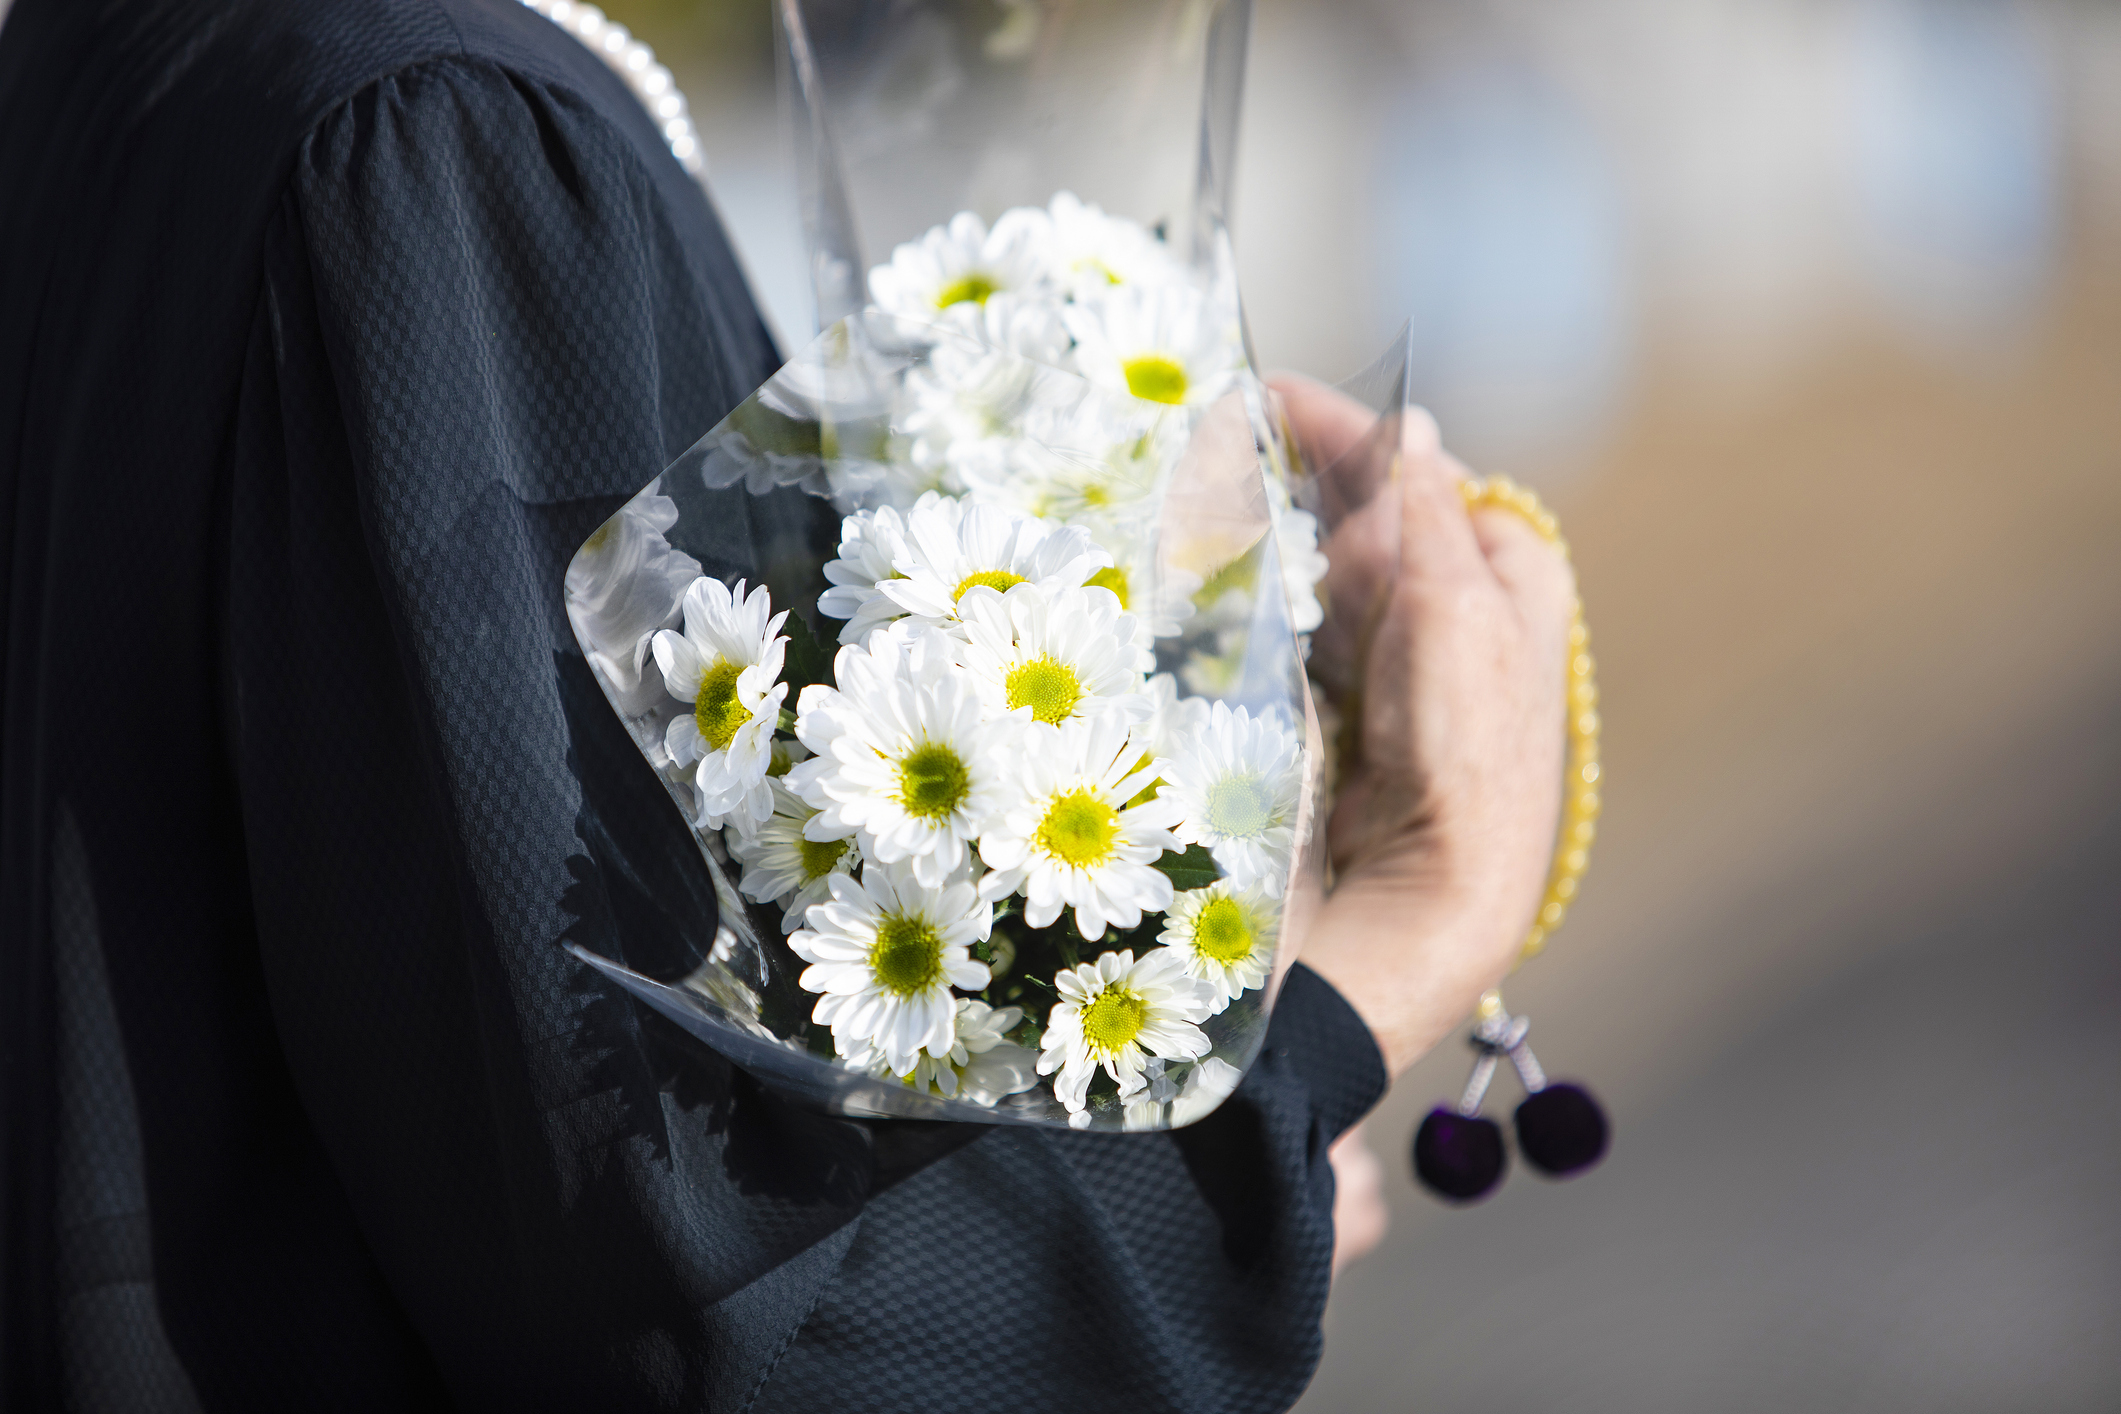 An item of the ceremony of the funeral of Japan. The Japanese woman of the senior in the black mourning dress which went for a visit to a grave with a chrysanthemum bunch and beads.